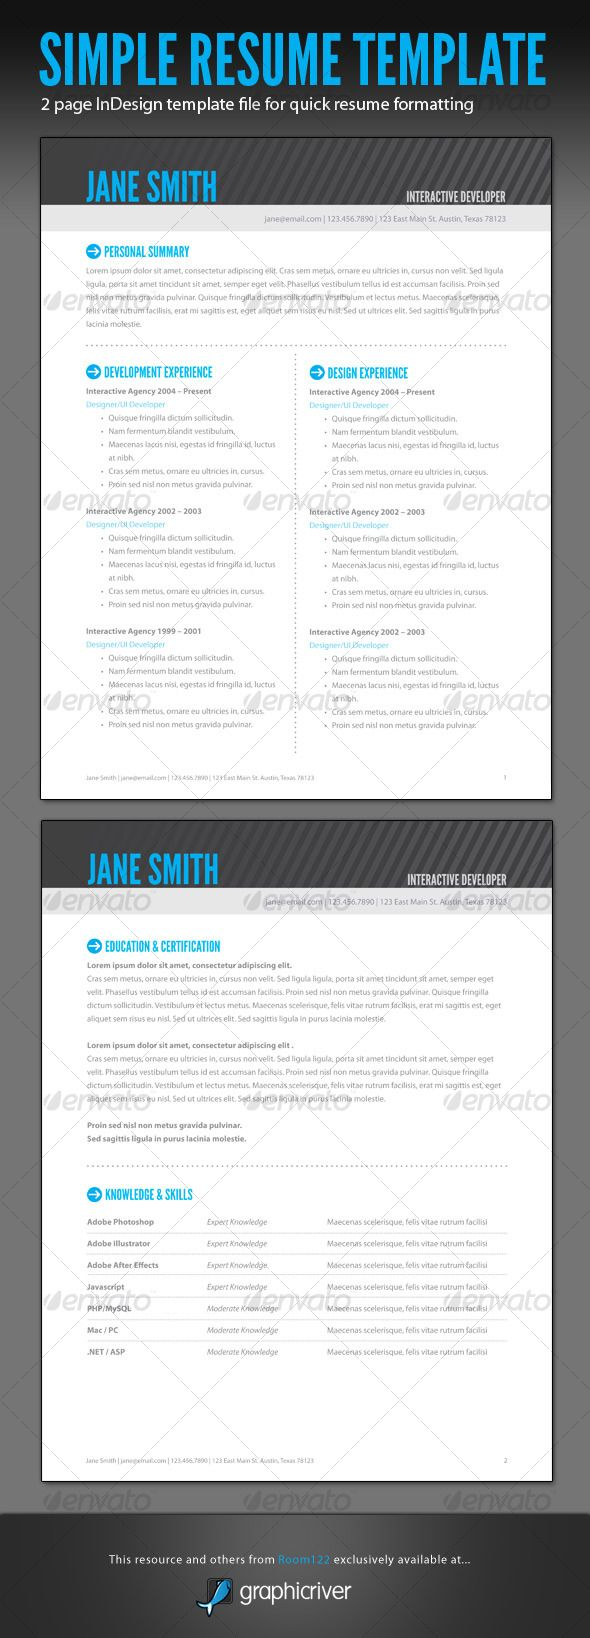 Simple Resume   InDesign Template  Resume In Indesign